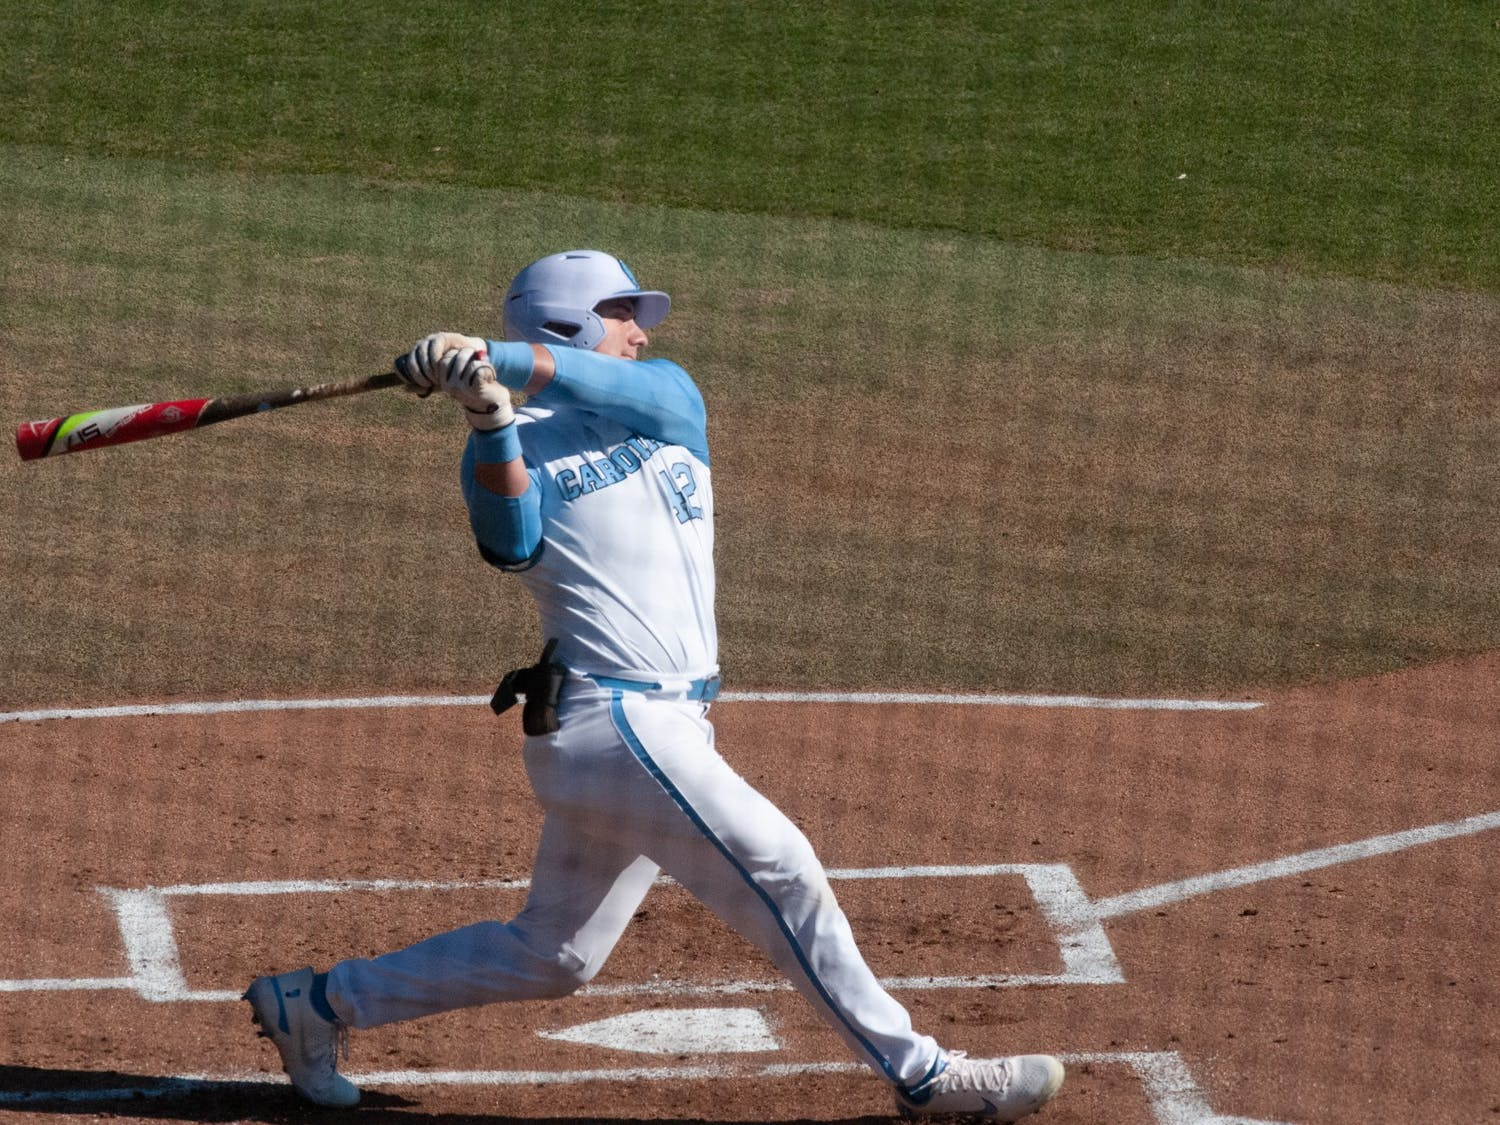 UNC first-year outfielder Will Stewart (12) swings at a pitch during UNC's 7-4 win over James Madison at Boshamer Stadium, Feb. 20, 2021.